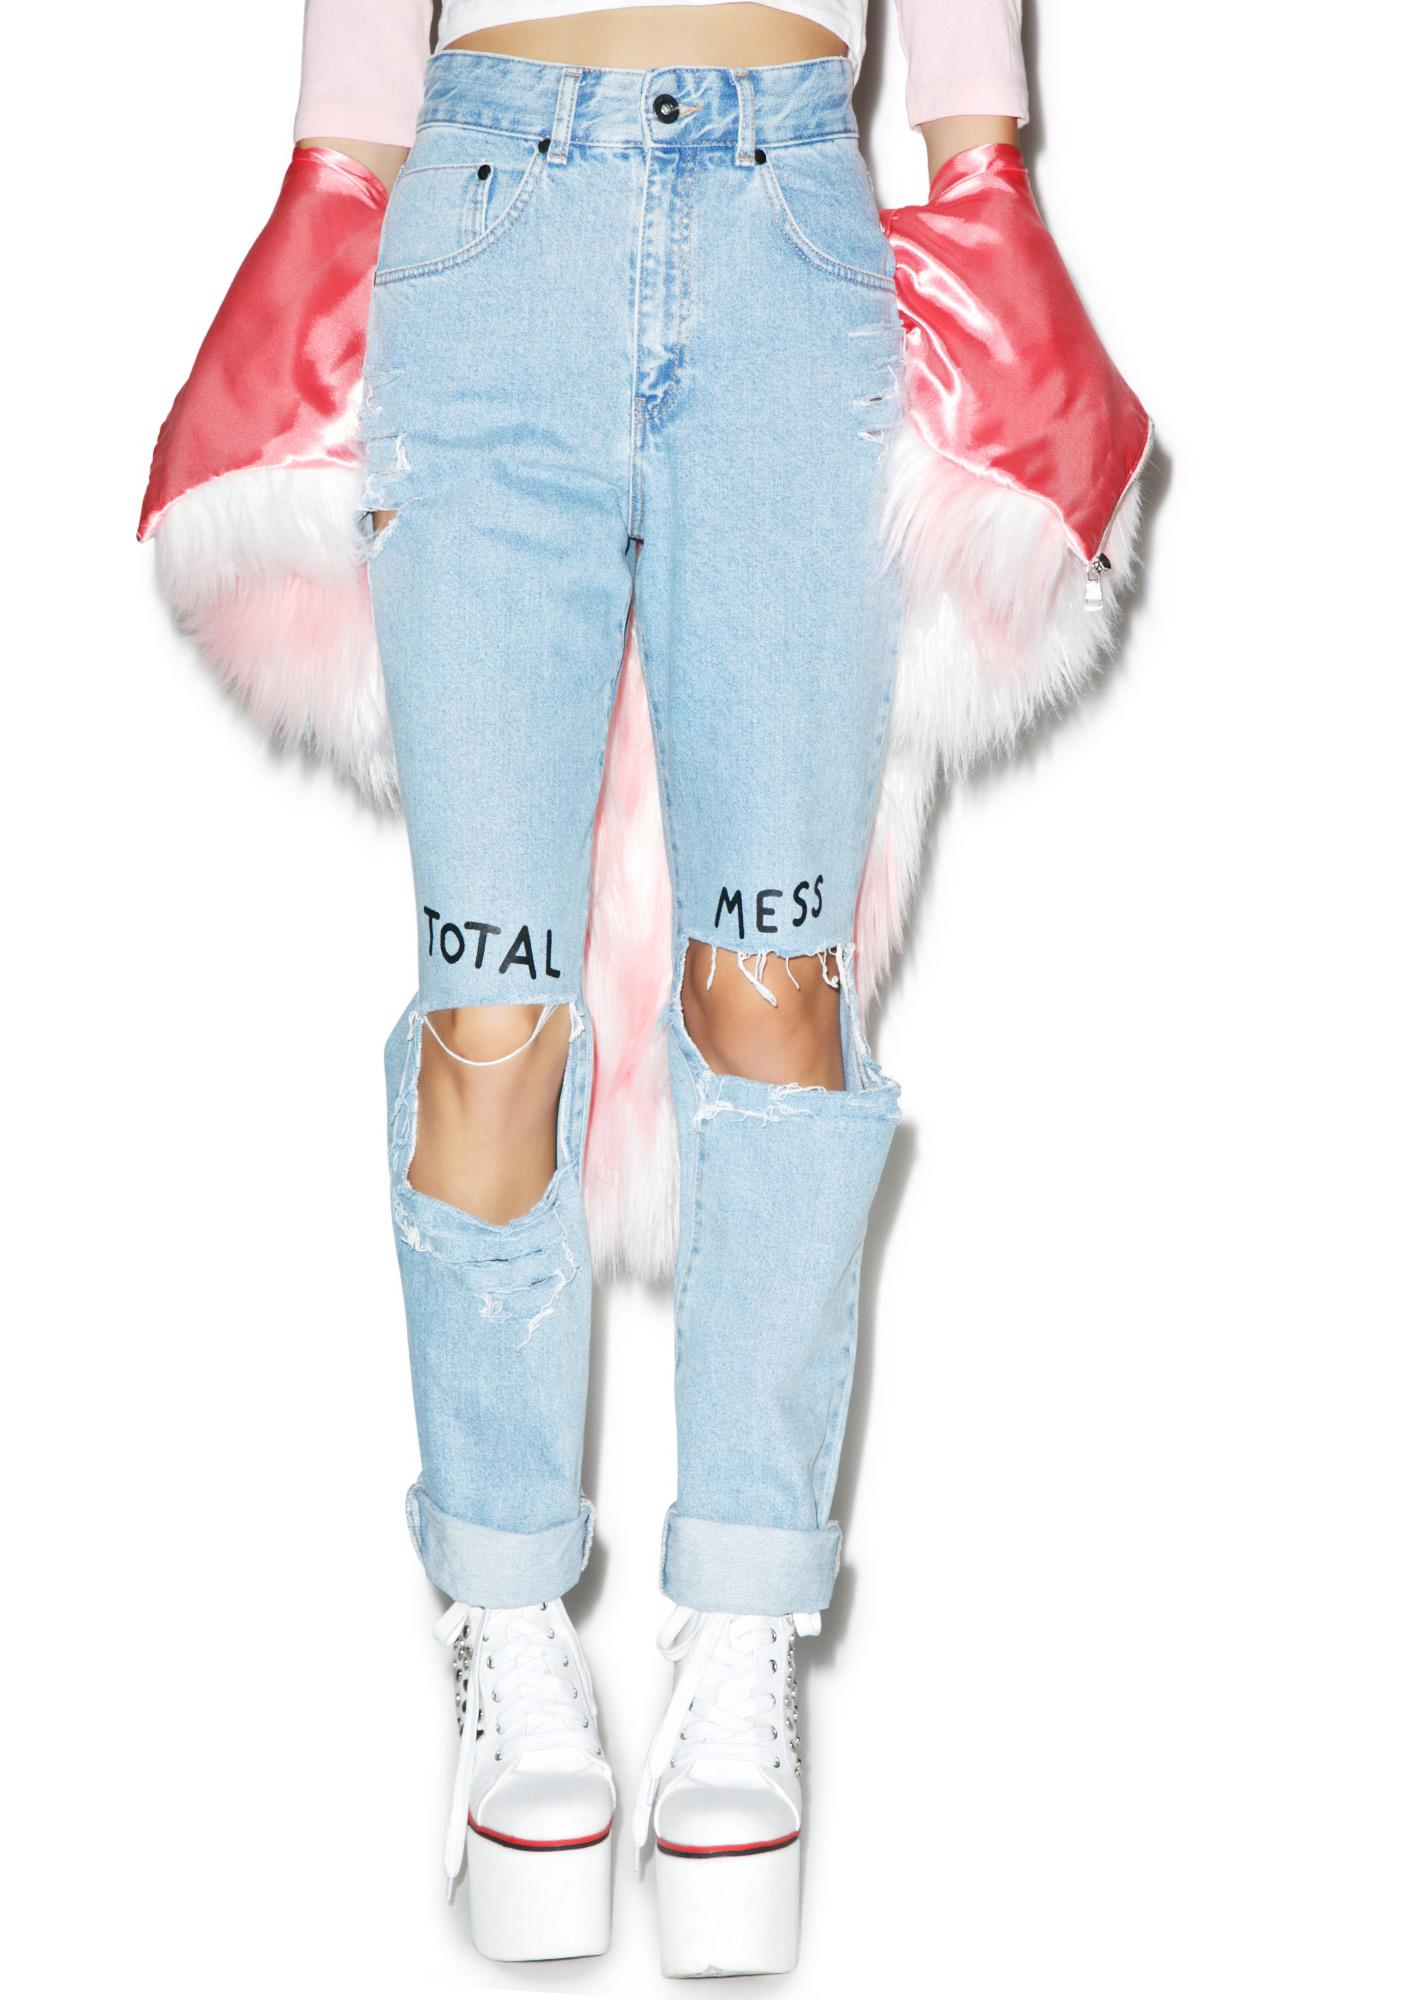 Lazy Oaf Total Mess Jeans